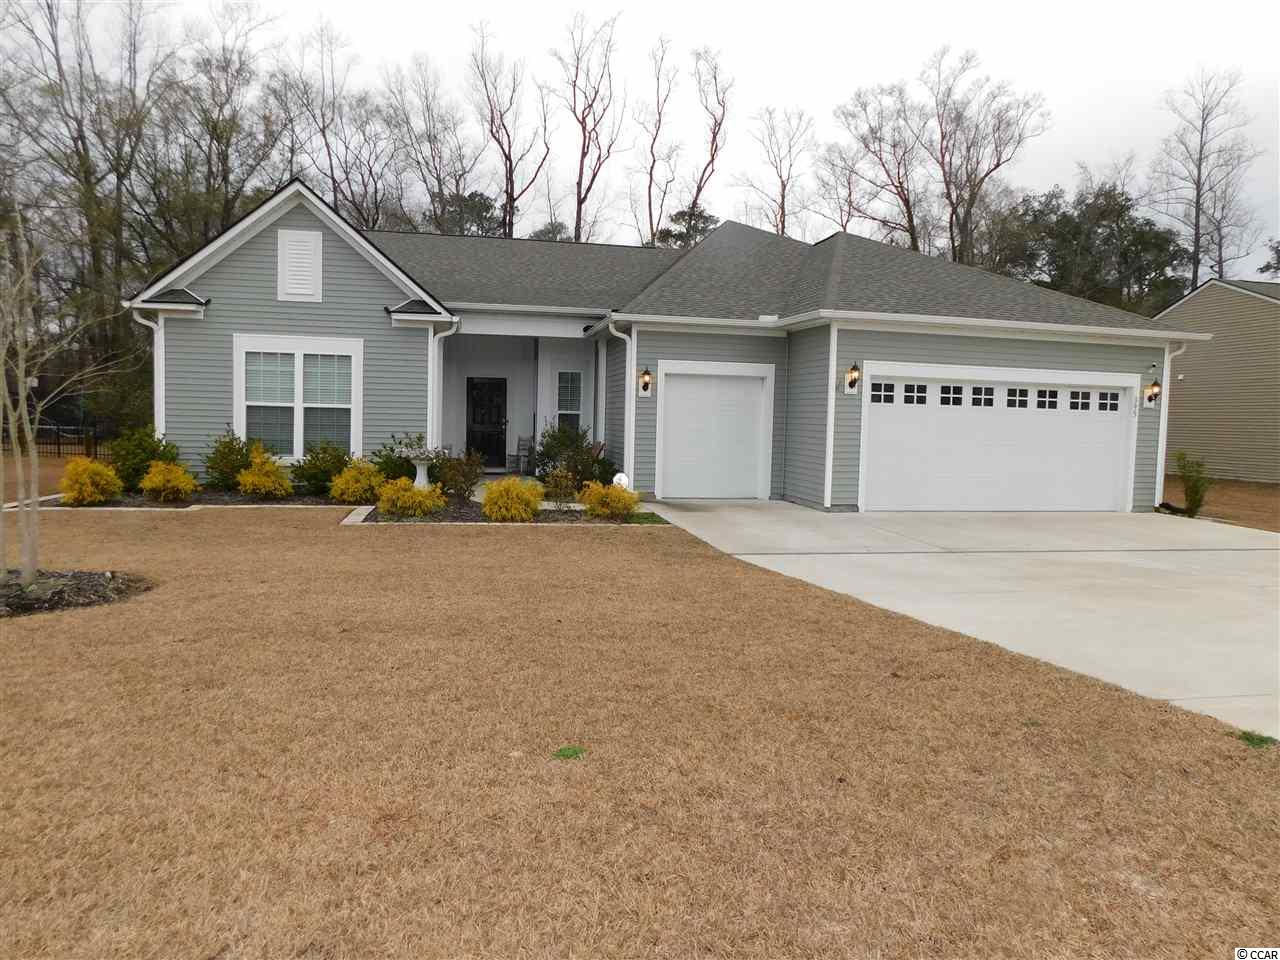 Heritage Preserve on Hwy 90...A Natural Gas Community. This home was built in 2018 with all the upgrades. Including but not limited to, engineered hardwood flooring crown molding and dual water meters. As you enter the home you'll see Custom Barn Doors to the office/bonus/flex room. Foyer leads into the spacious open-living area with great view of the backyard. Gorgeous gourmet kitchen features granite countertops, gas range w/ hood, walk-in custom pantry, upgraded cabinets with pullout drawers, and soft close doors and drawers! . Enclosed 4 Season Room at back of the house overlooks the preserve and it's part of the home lot. Very spacious Living/Kitchen/Dining area...perfect for hosting parties! Master suite shares the serene, wooded view and features tray ceiling, luxurious door less tiled shower, and super-huge walk-in closet. Your outdoor living space is ideal for entertaining with gas hook up, fire-pit, extended patio, and lawn irrigation Detached shed/storage with back deck for enjoying nature. Laundry/mud room, huge walk-up attic storage, epoxied 2-car + golf cart garage. Heritage Preserve is a natural gas community includes a spectacular community pool with kiddie area and pavilion, playground, and trash/recycle pickup. Flood insurance is NOT required. A less than 5-min drive to International Drive or Hwy 22 provides easy access to shopping, restaurants, amenities, and the beach!